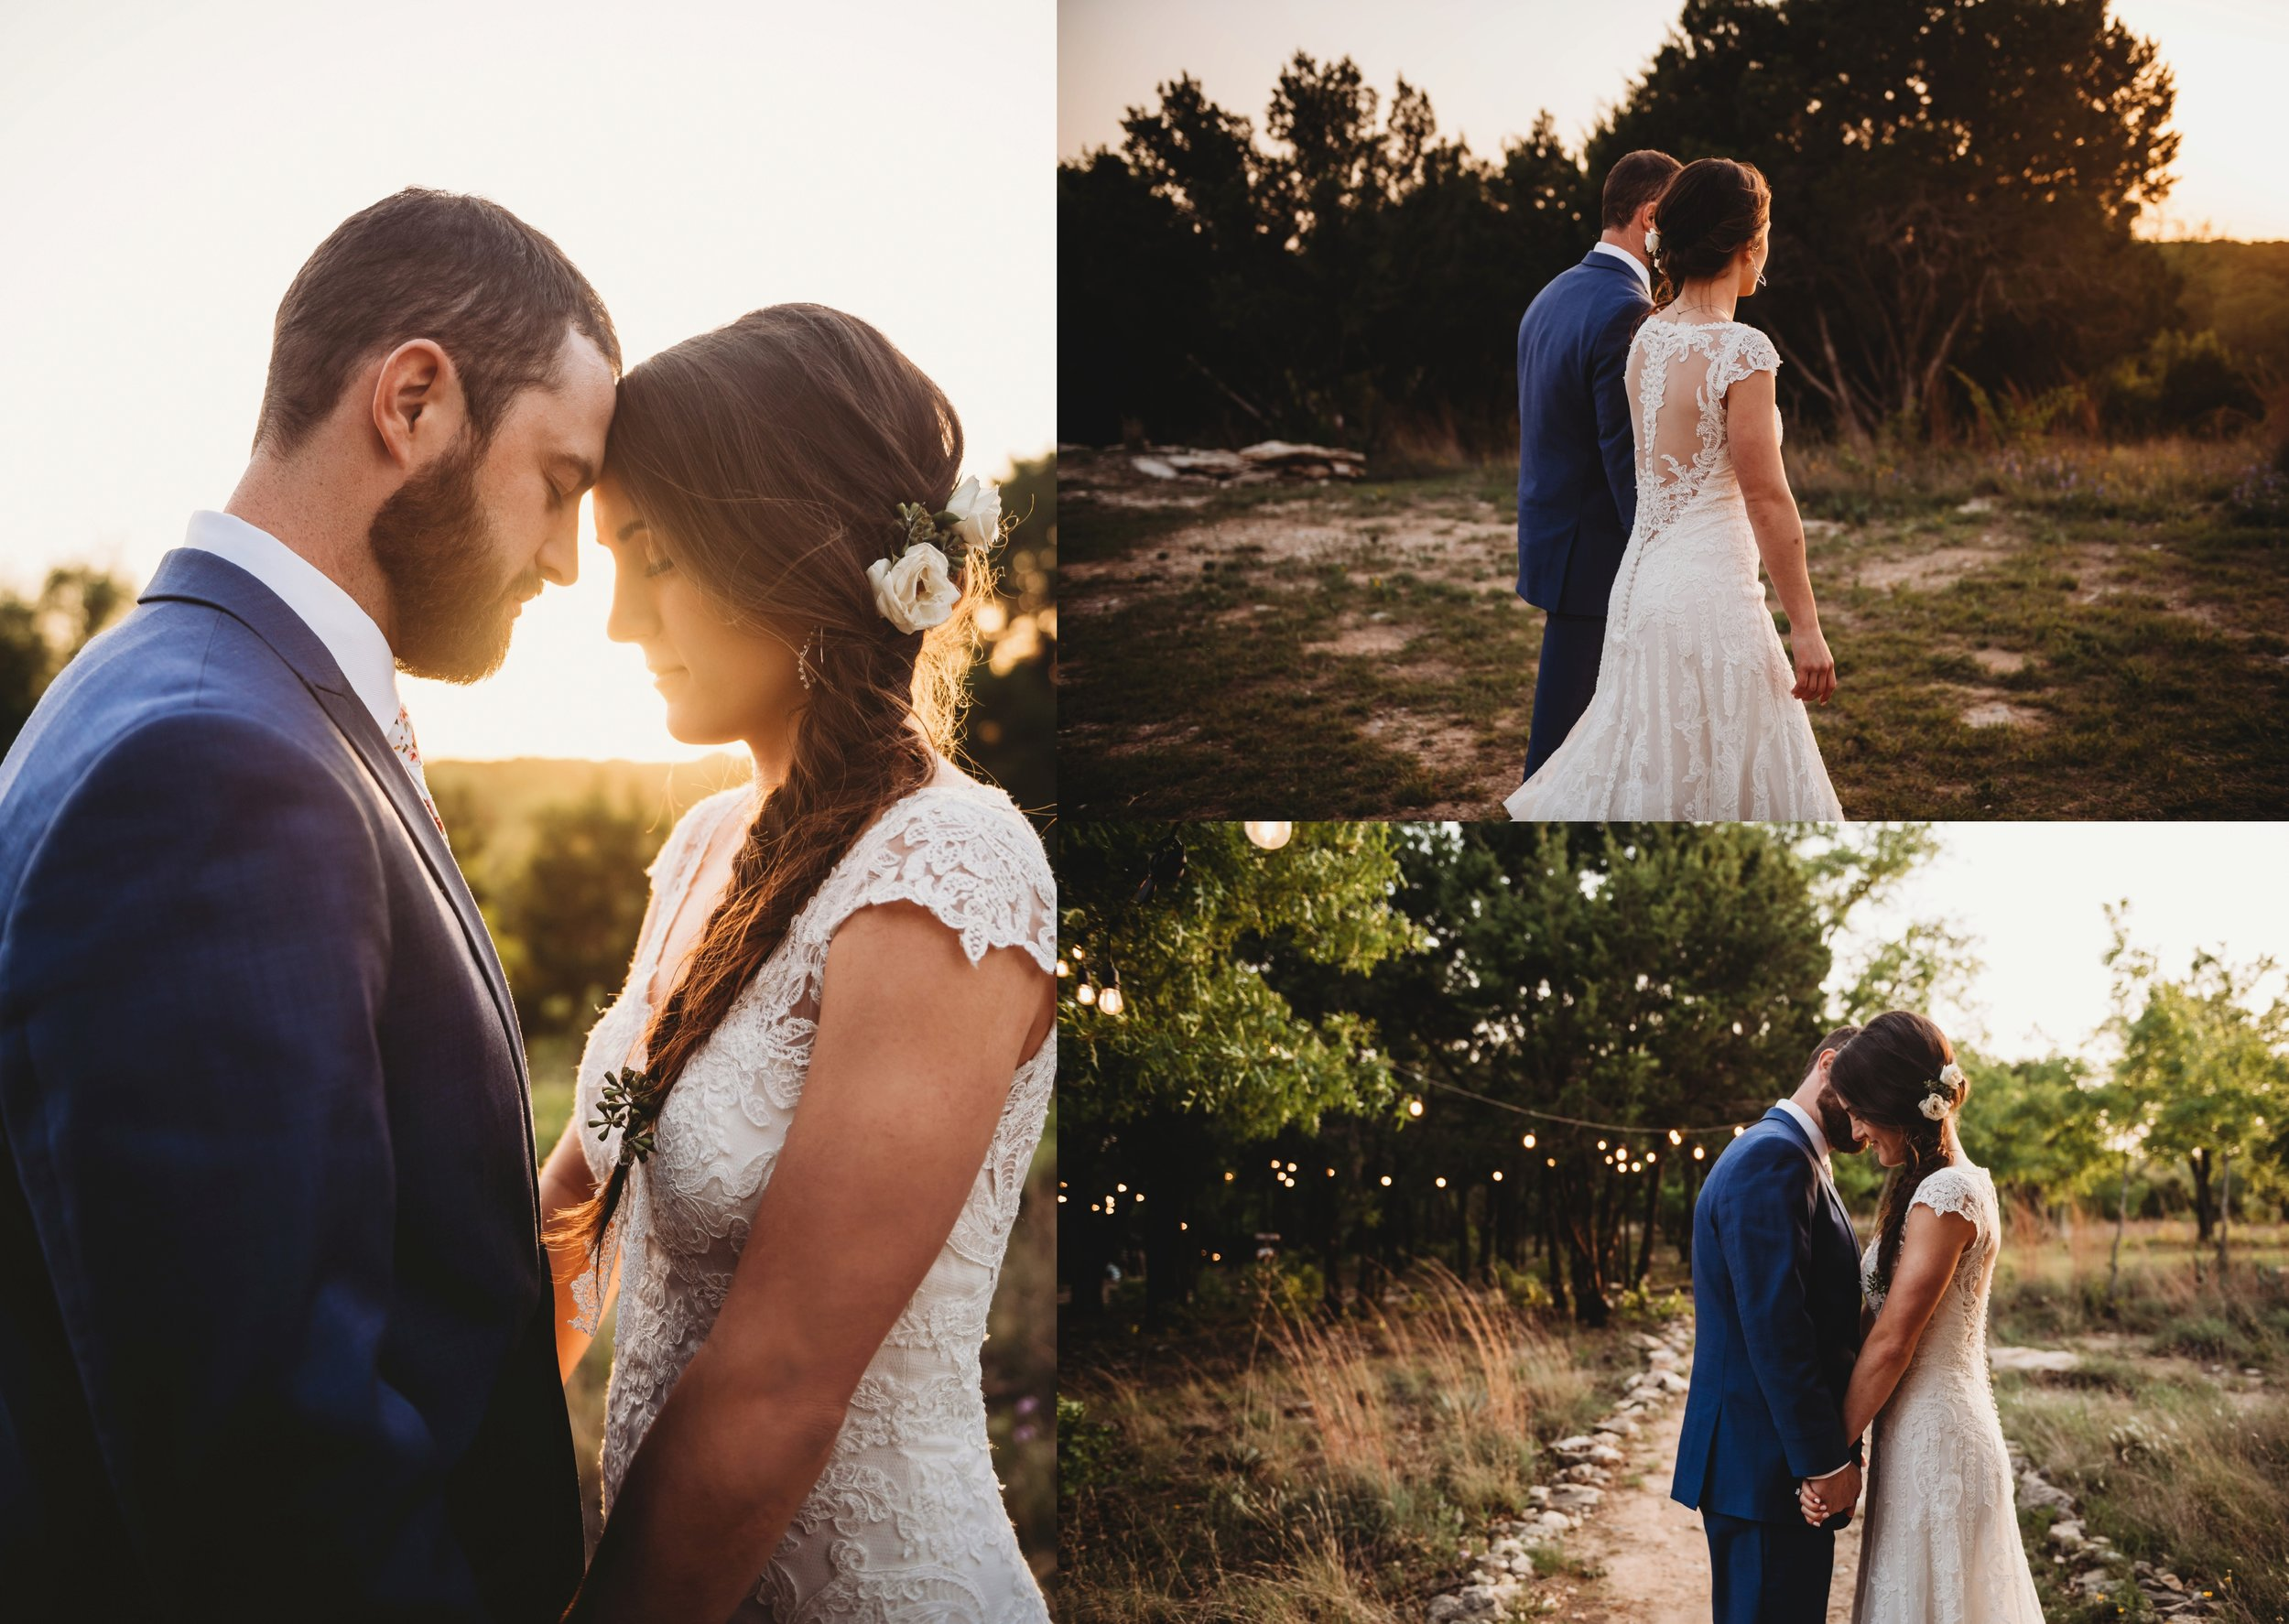 The-White-Fiore-Five-Oaks-Farm-Fort-Worth-Wedding-Planner-Bride-And-Groom-Portraits_013.jpg